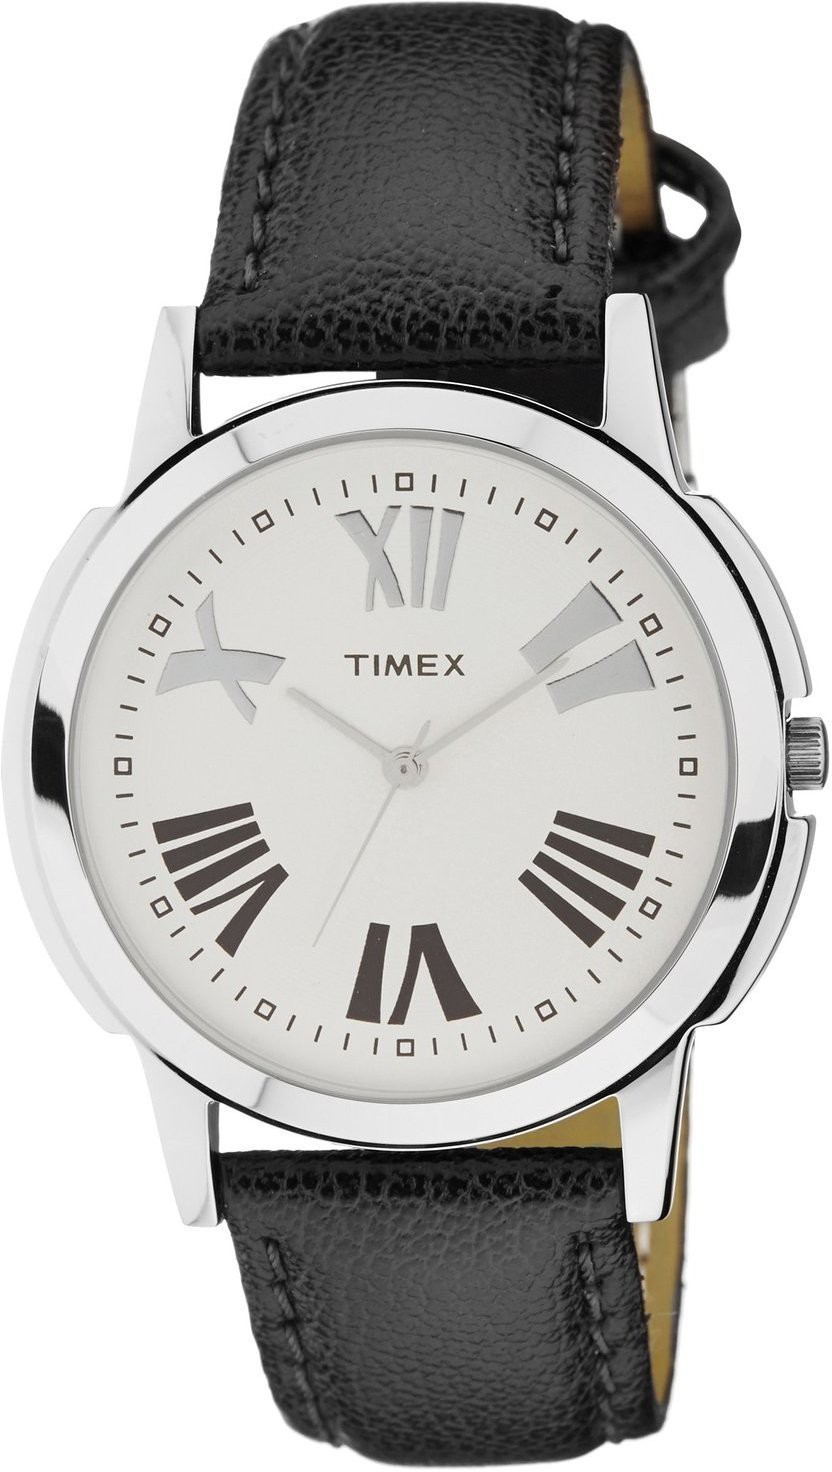 Deals | Timex & Maxima Watches